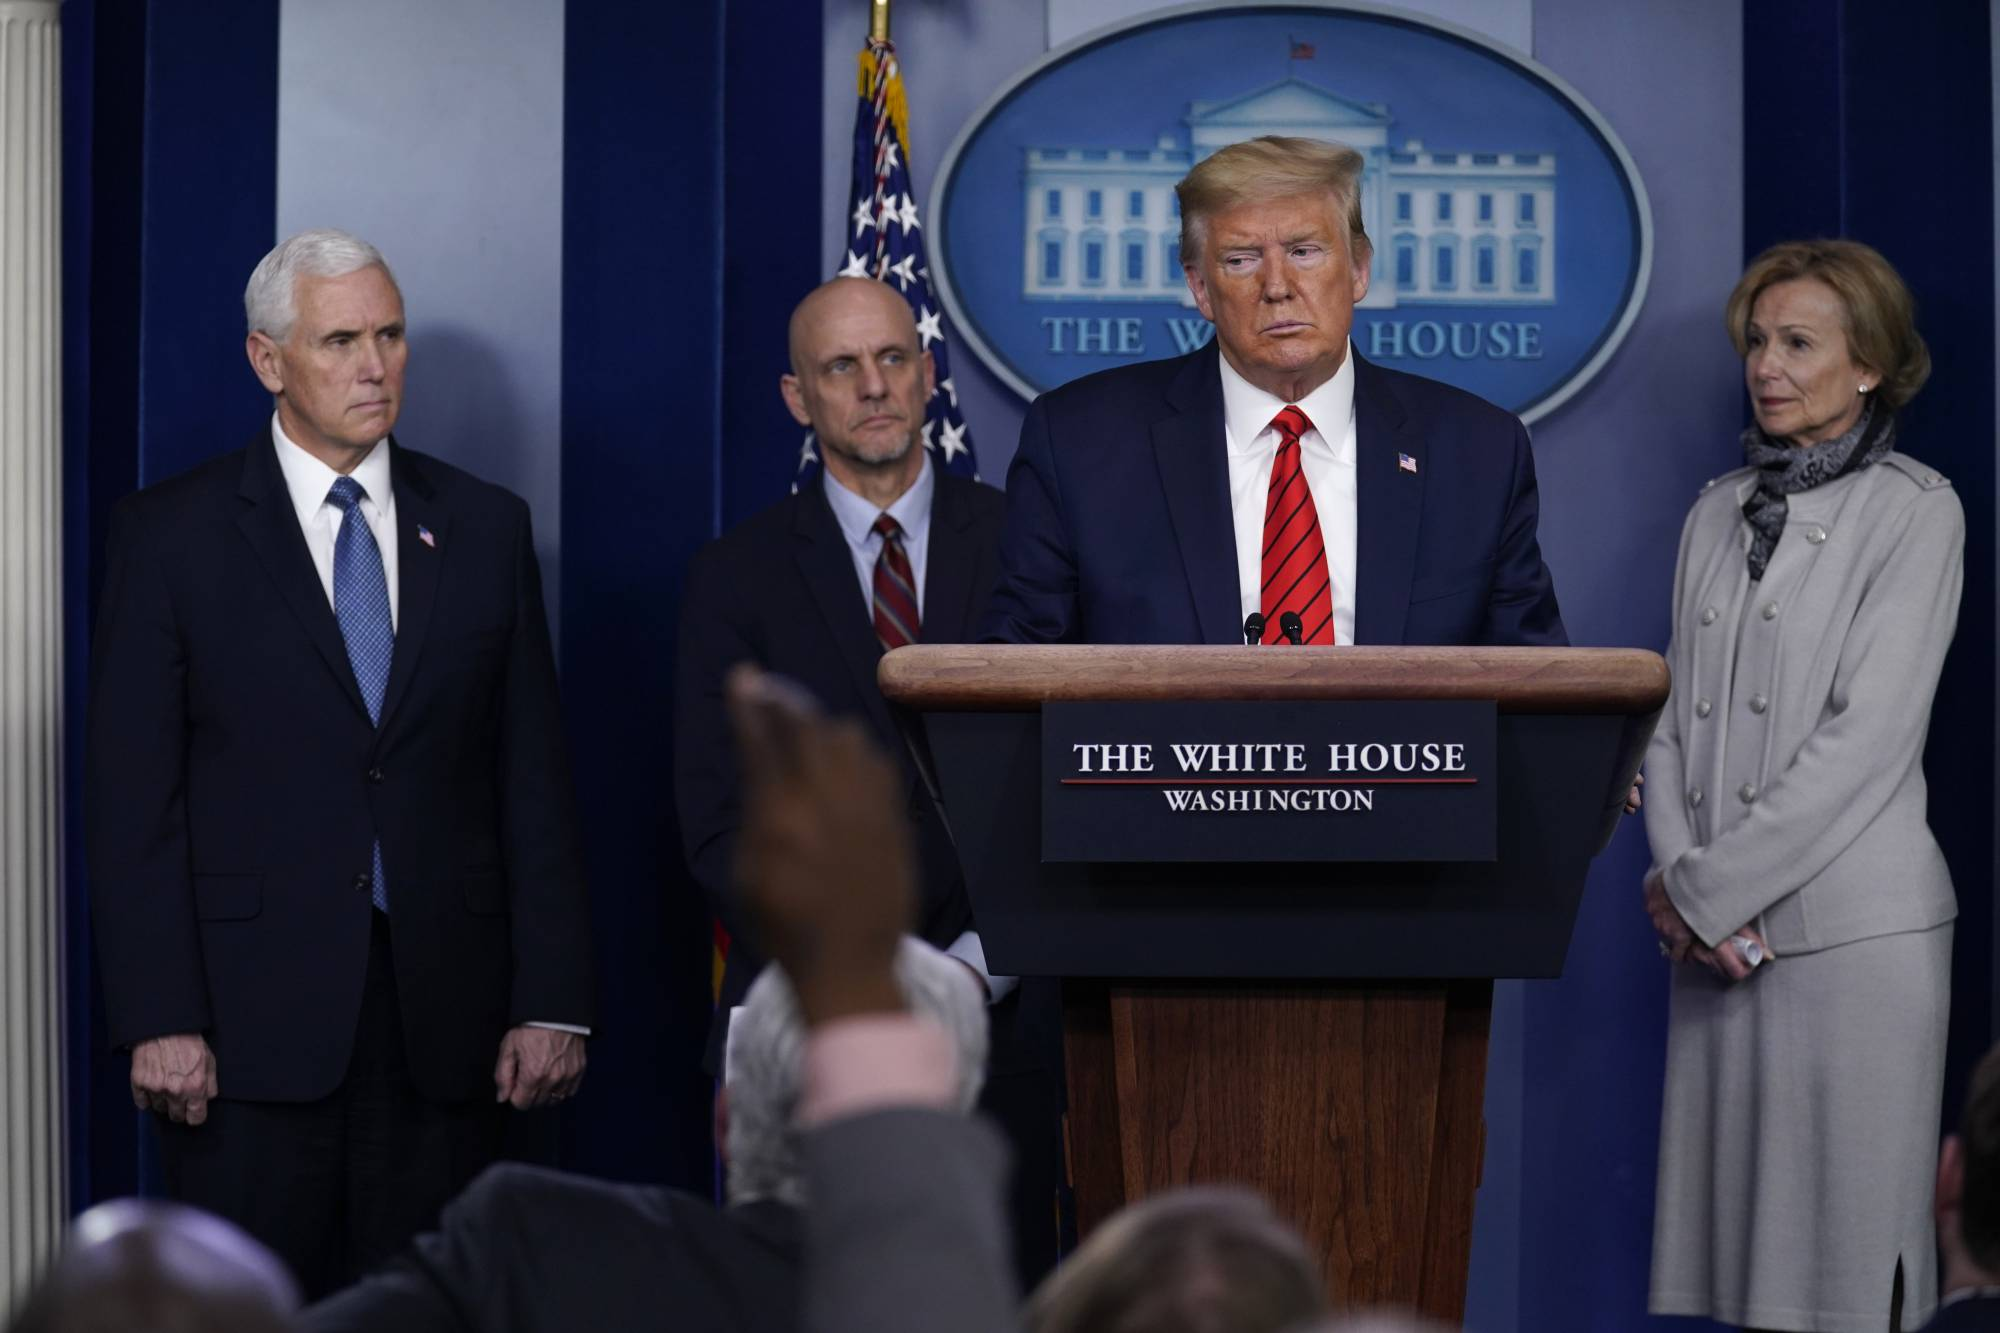 President Donald Trump takes questions during press briefing with the coronavirus task force, at the White House, Thursday, March 19, 2020, in Washington. (AP Photo/Evan Vucci)